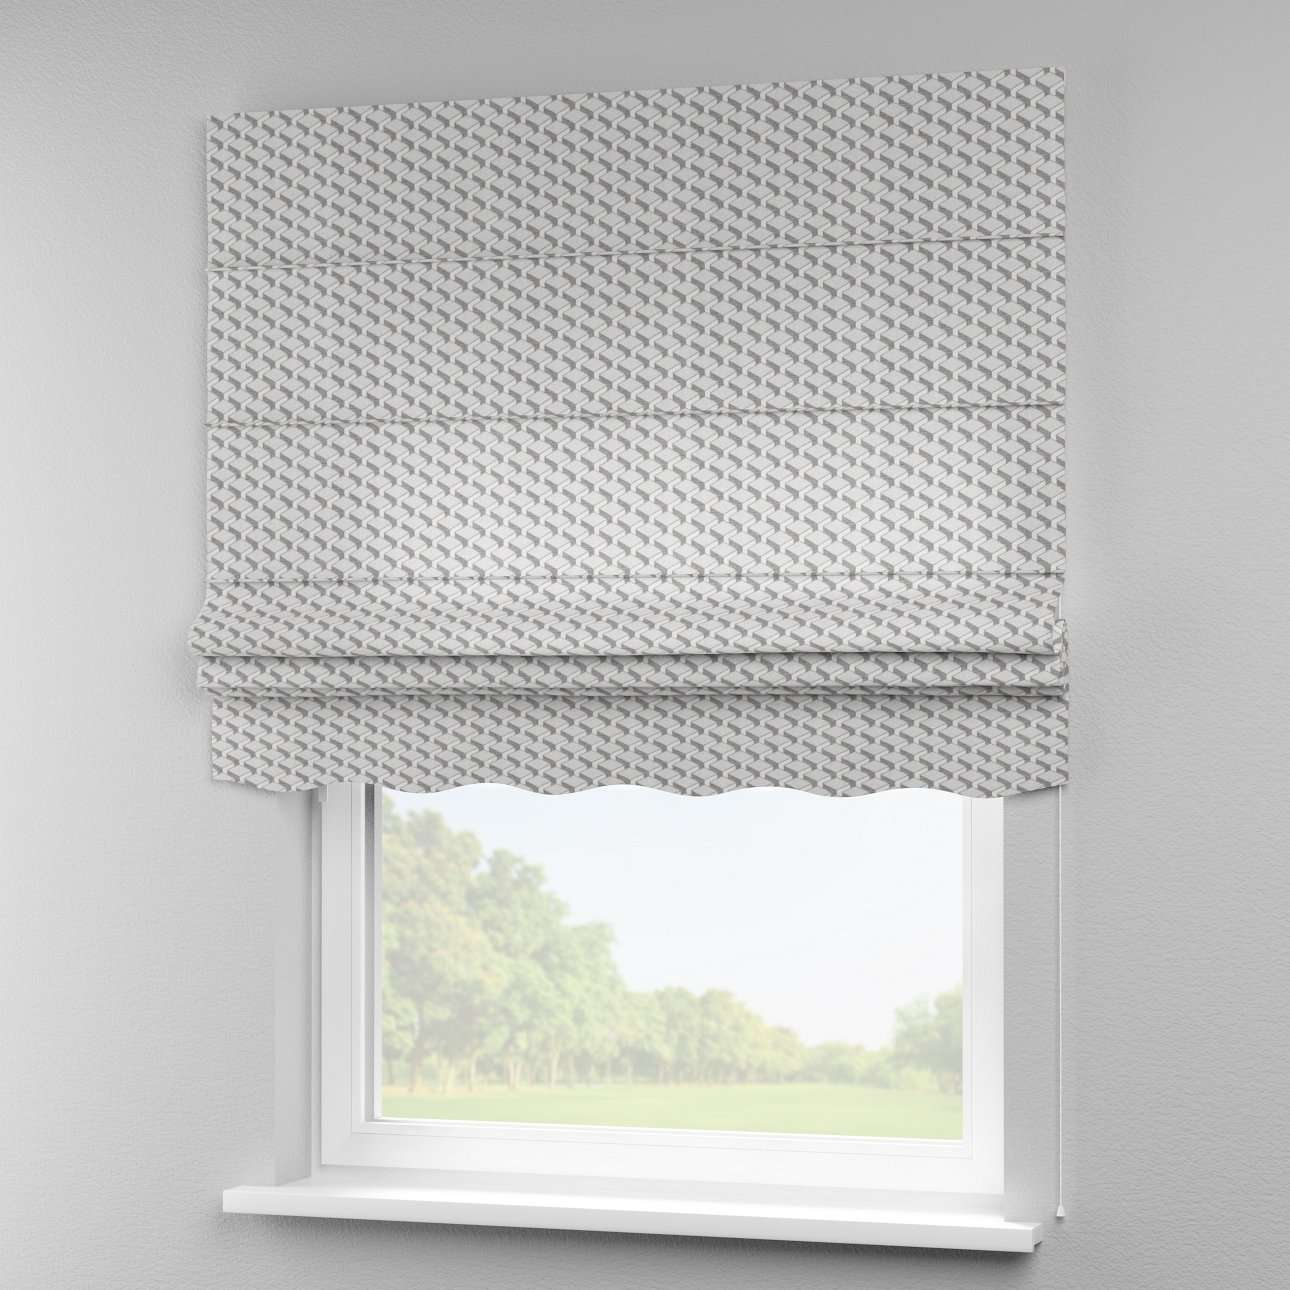 Florence roman blind  80 x 170 cm (31.5 x 67 inch) in collection Rustica, fabric: 138-18